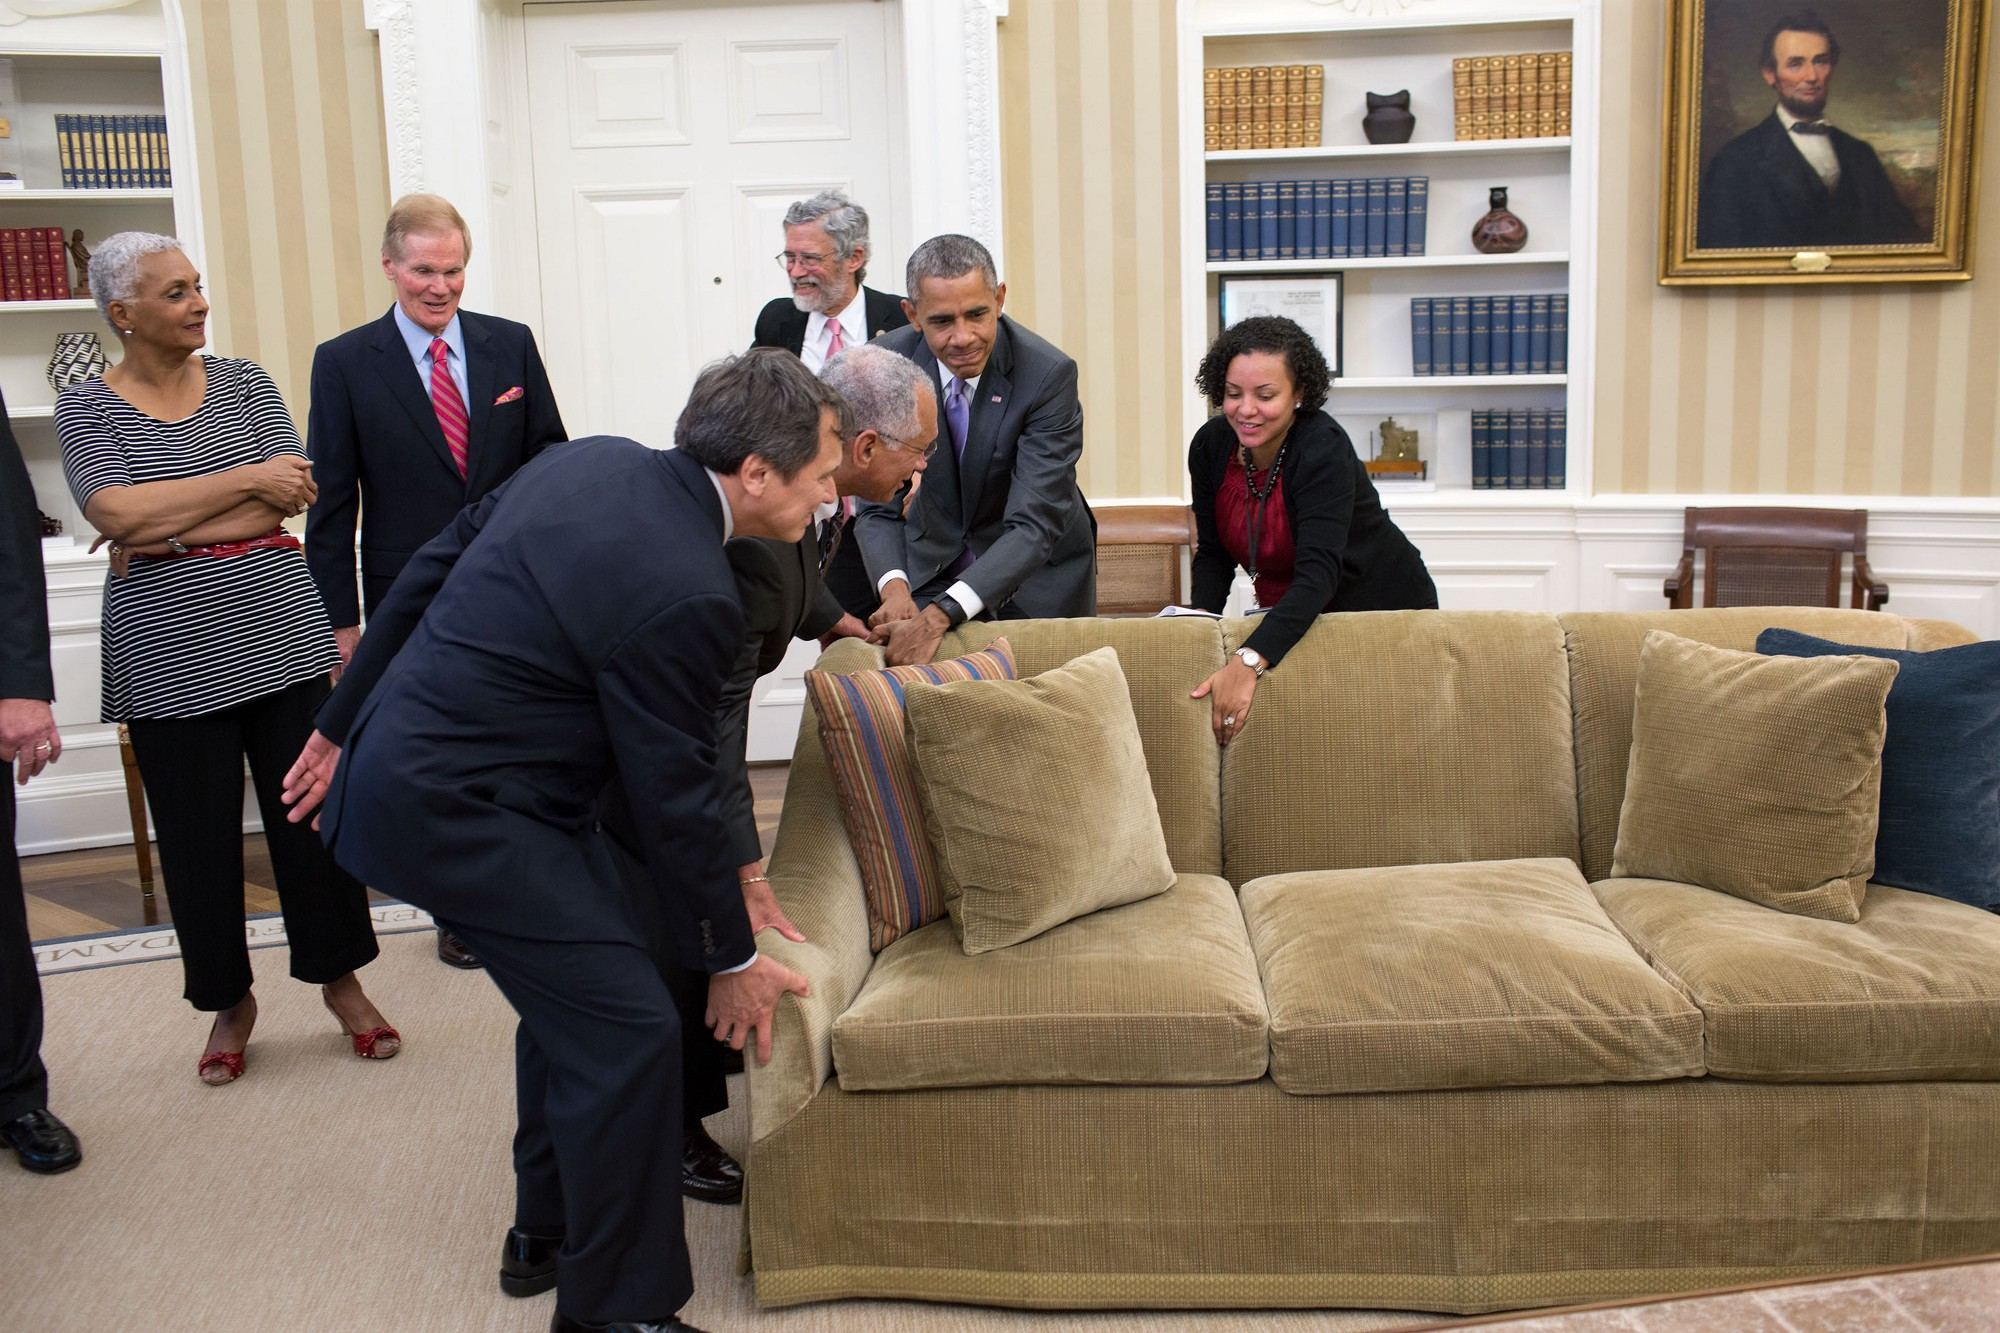 Tico Helps Obama Move His Sofa Q Costa Rica